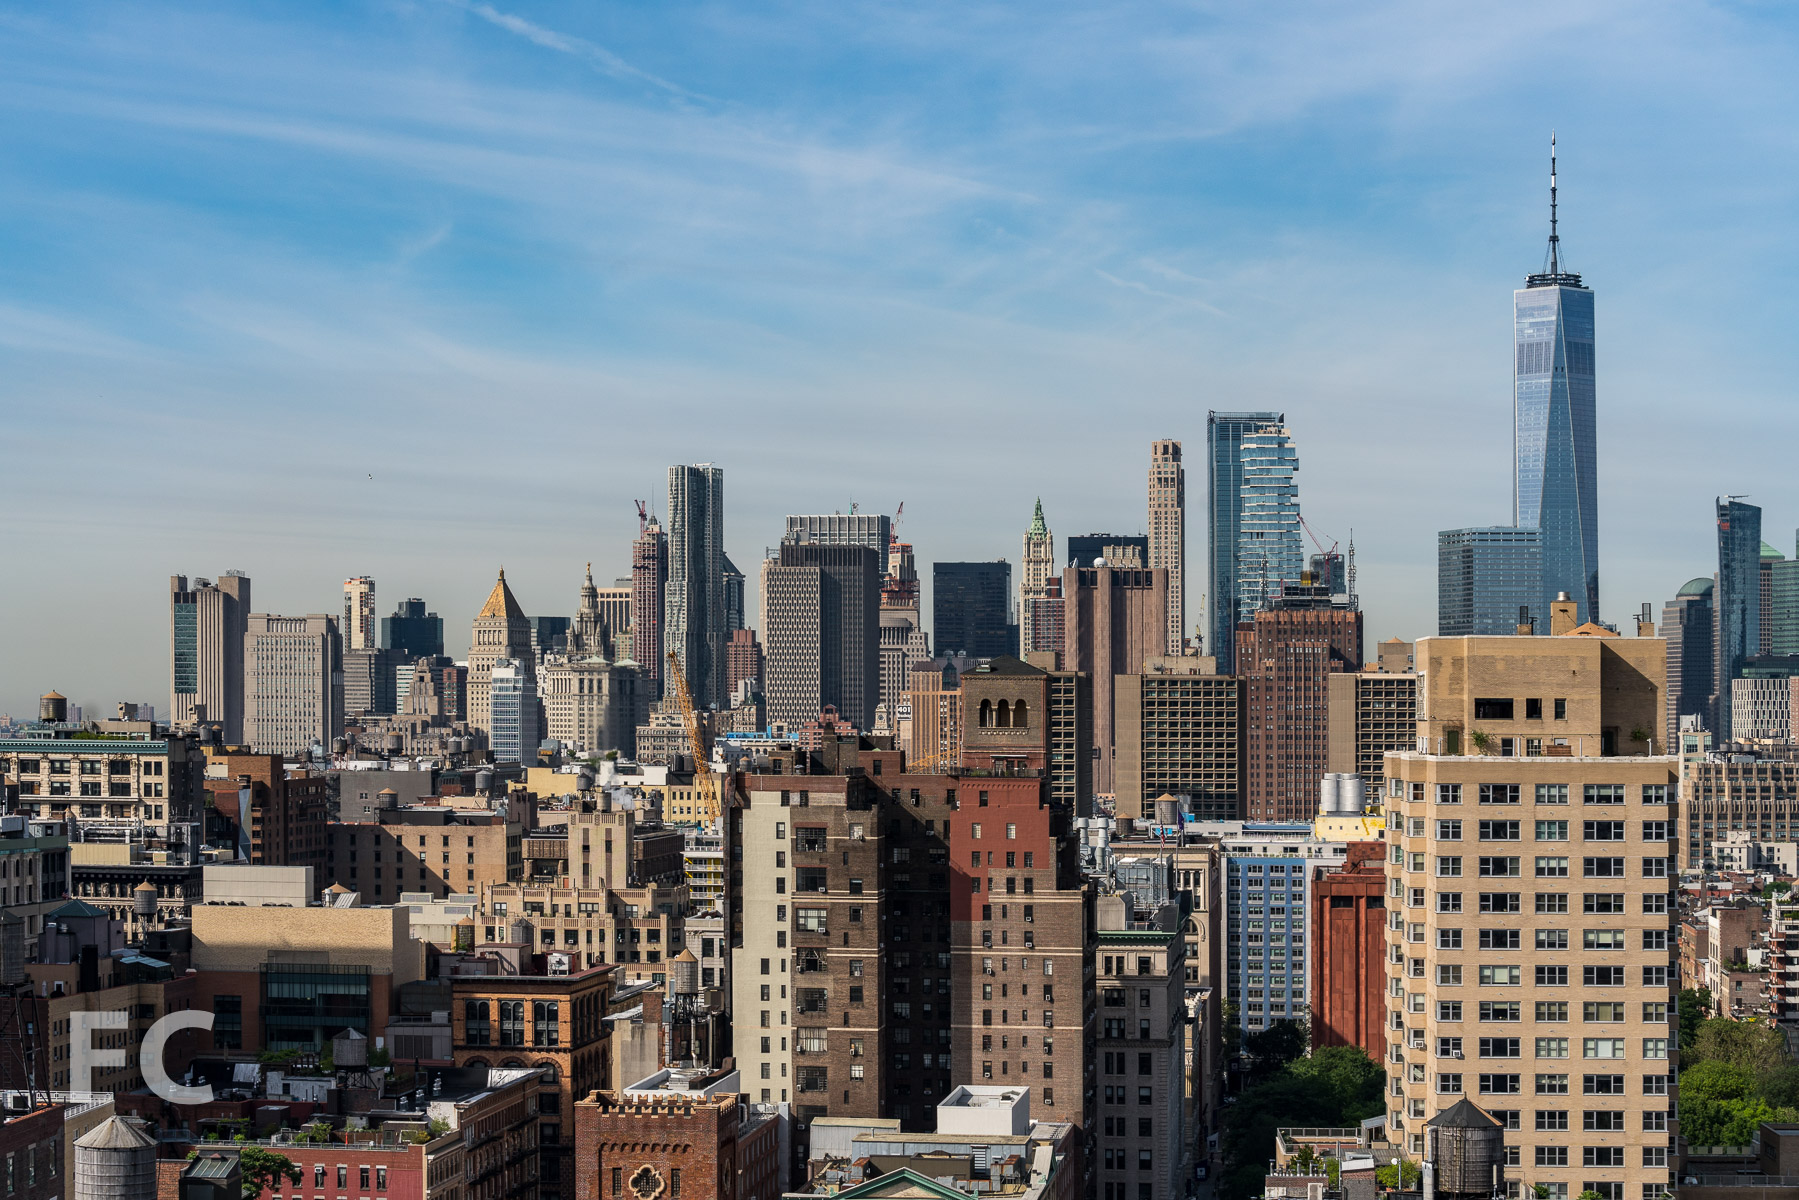 View south towards Lower Manhattan from the penthouse.